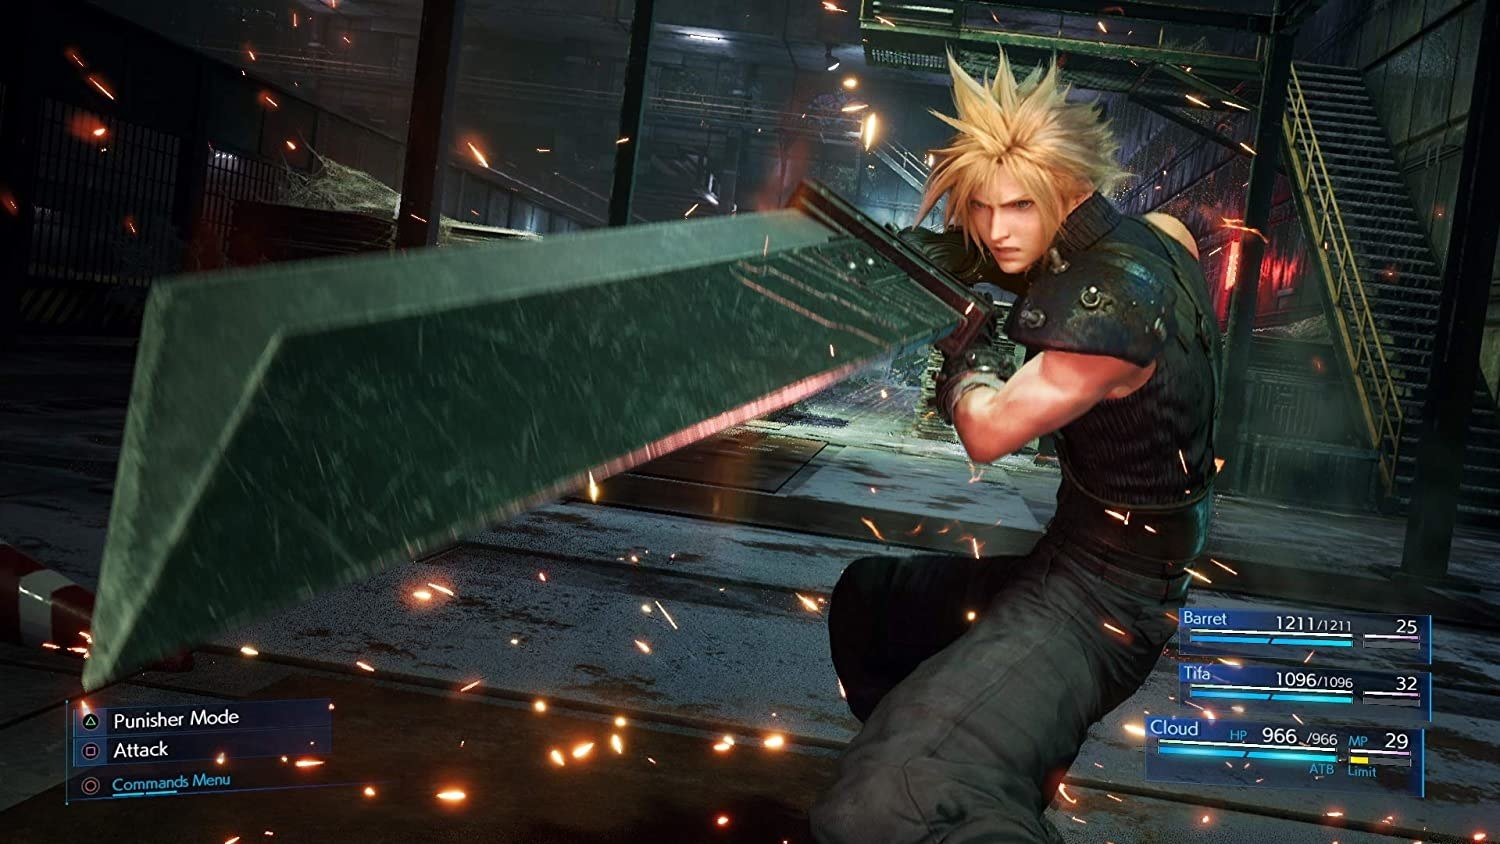 Cloud wielding his signature sword in stunning HD